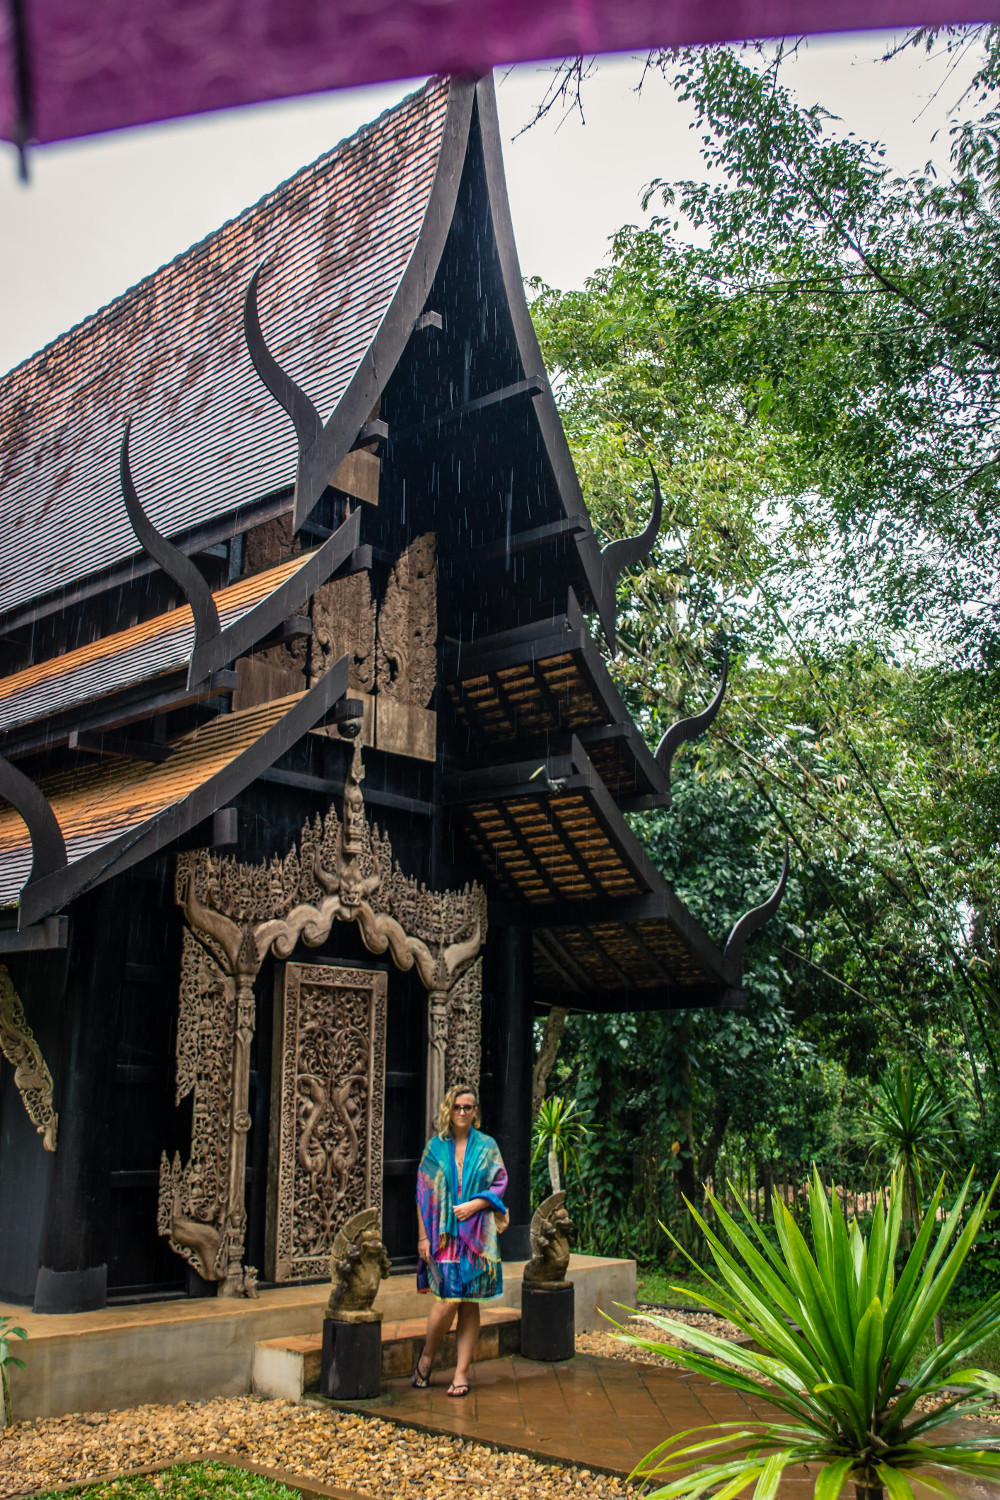 Baan Dam Museum also known as the Black House in Chiang Rai